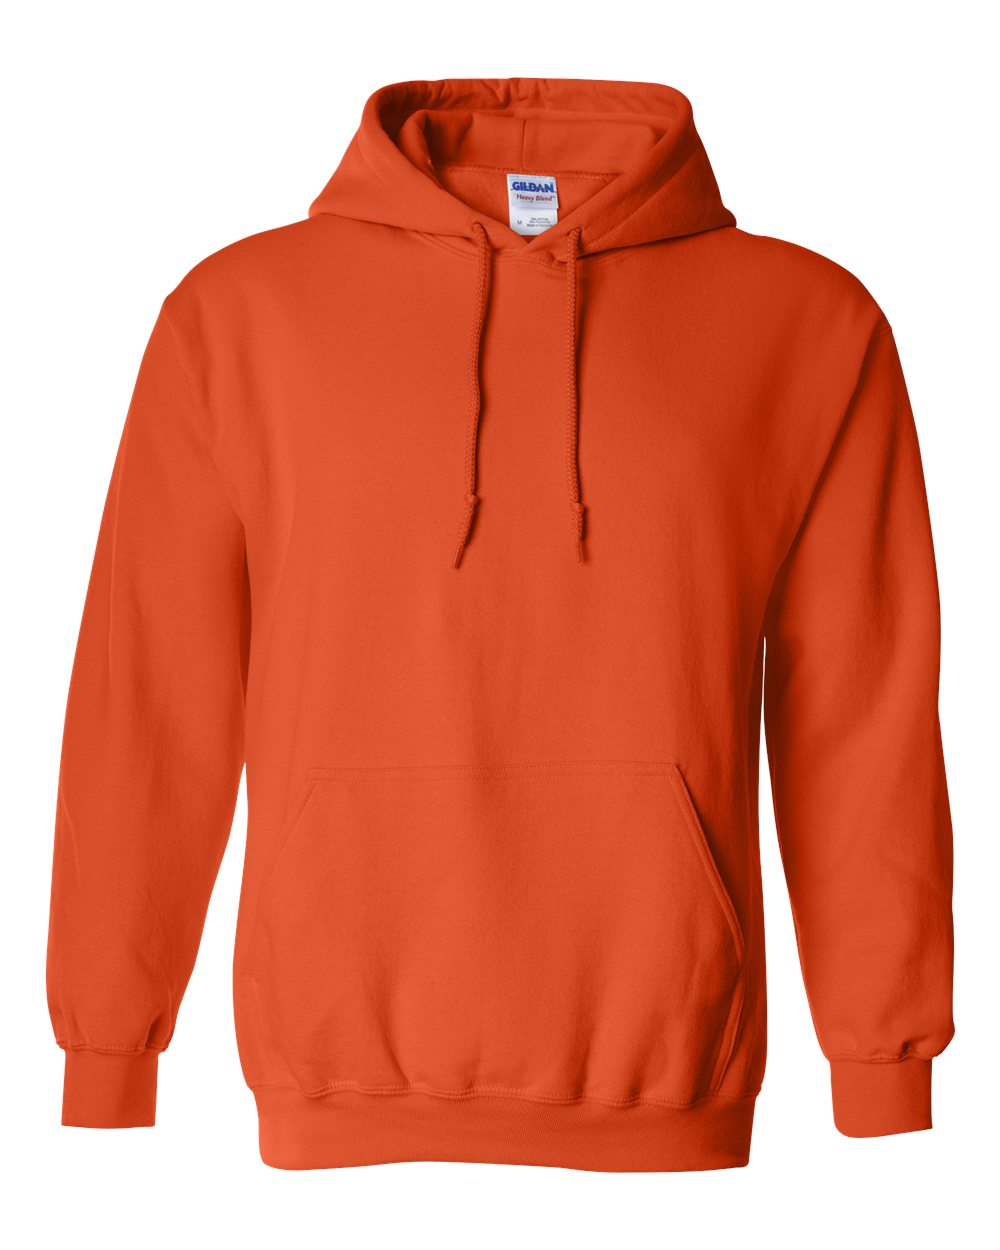 Gildan_18500_Orange_Front_High.jpg